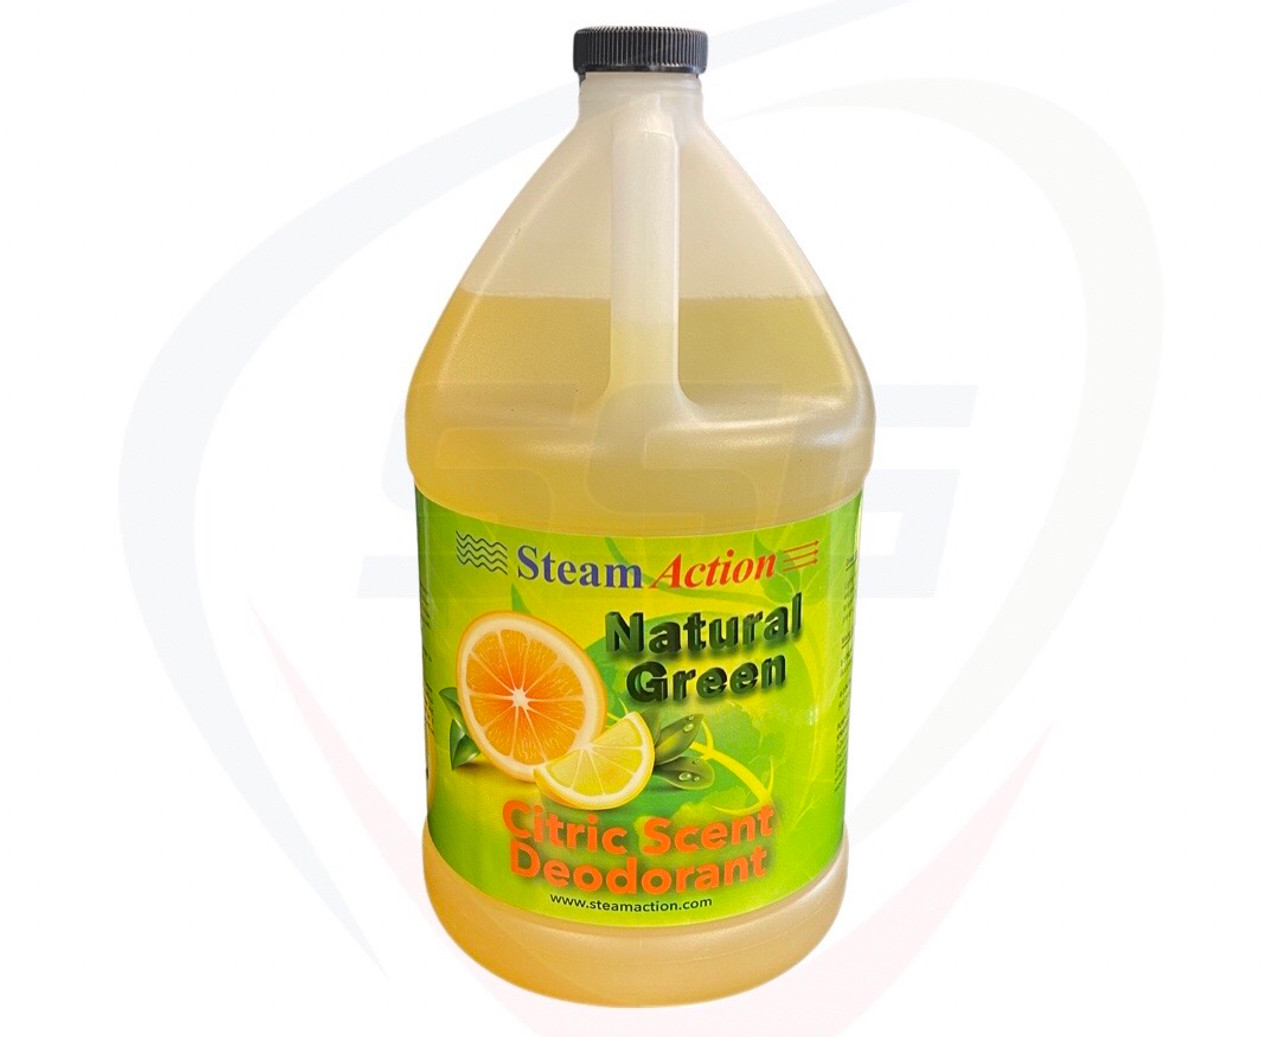 Steamaction Natural Green Citric Scent Deodorant